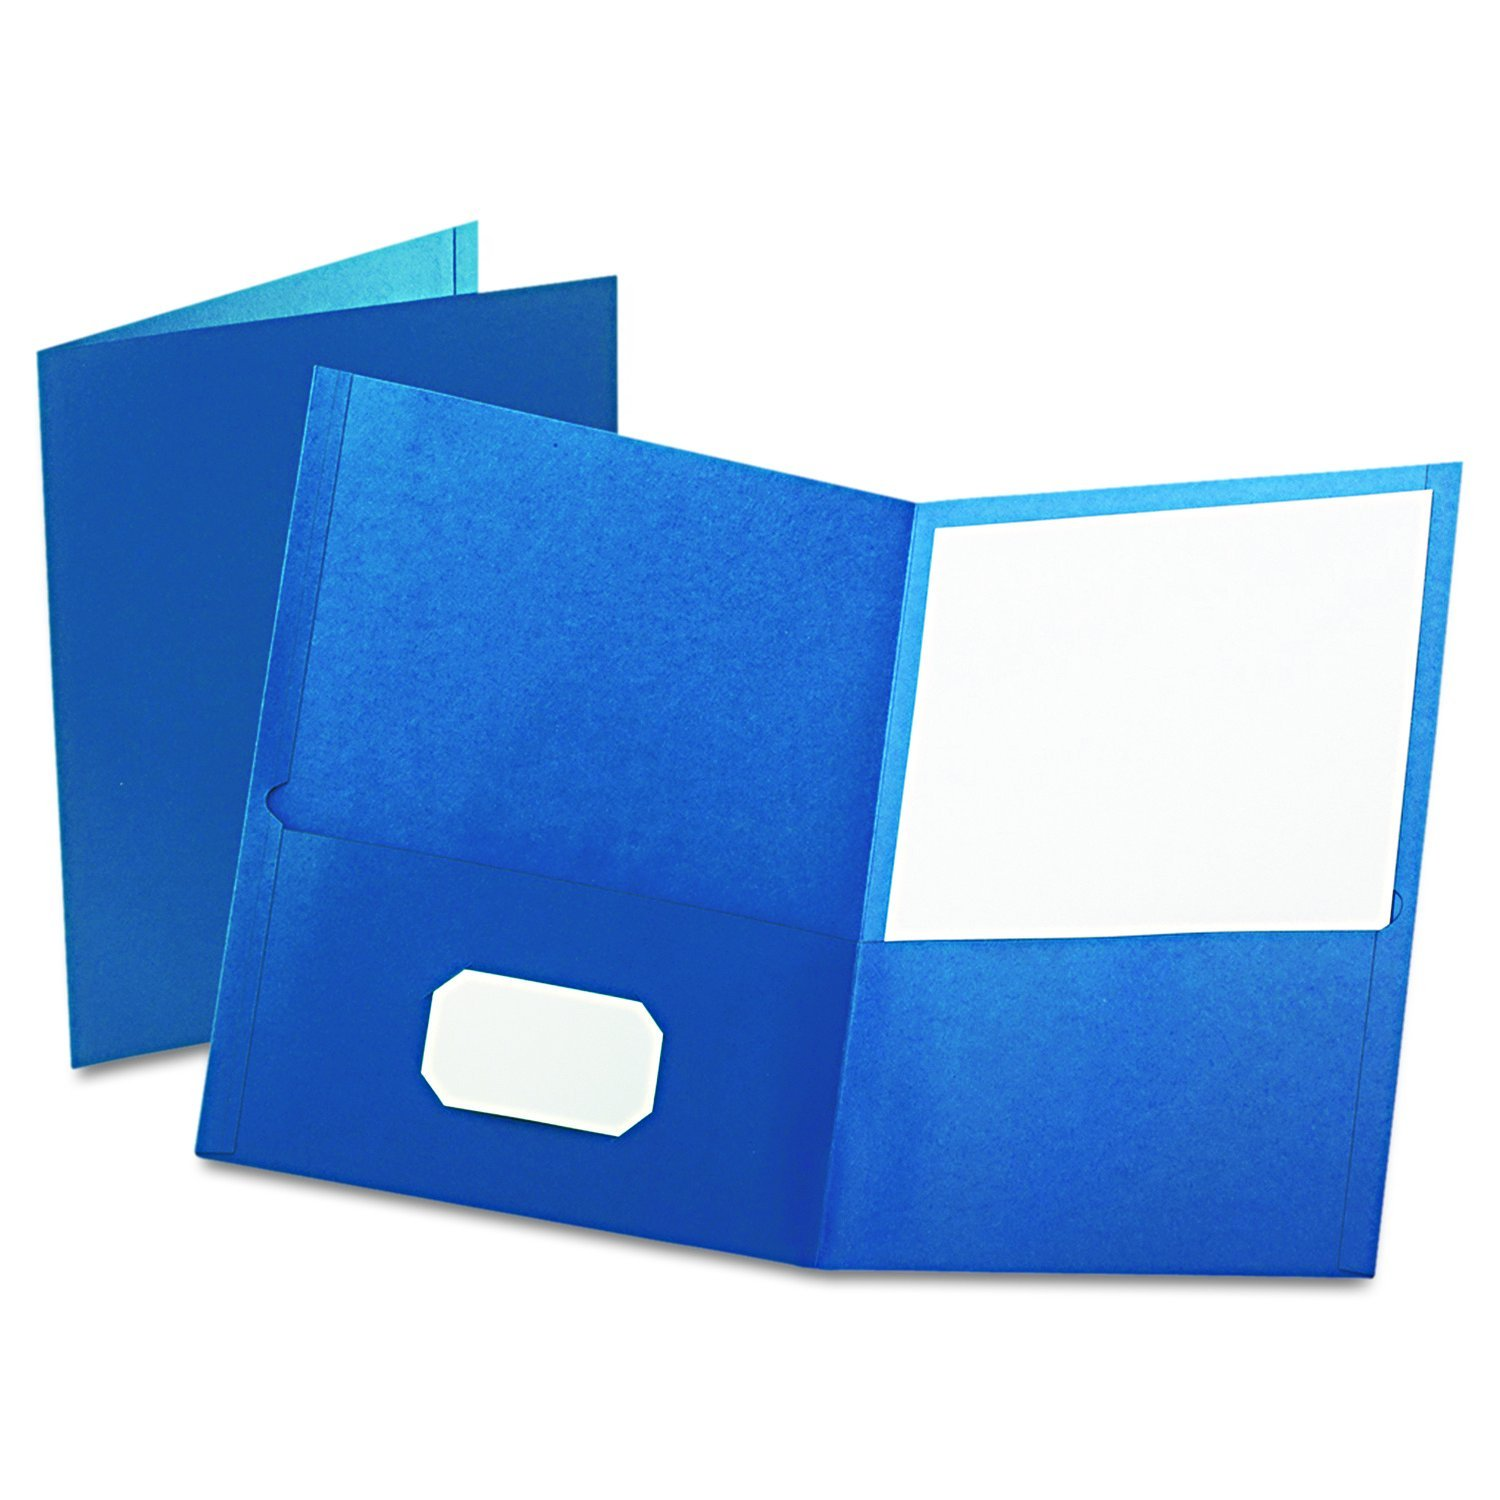 Twin Pocket Folders, Letter Size, Assorted Colors, 25 per Box (57513), Twin pockets hold 50 sheets each By Oxford